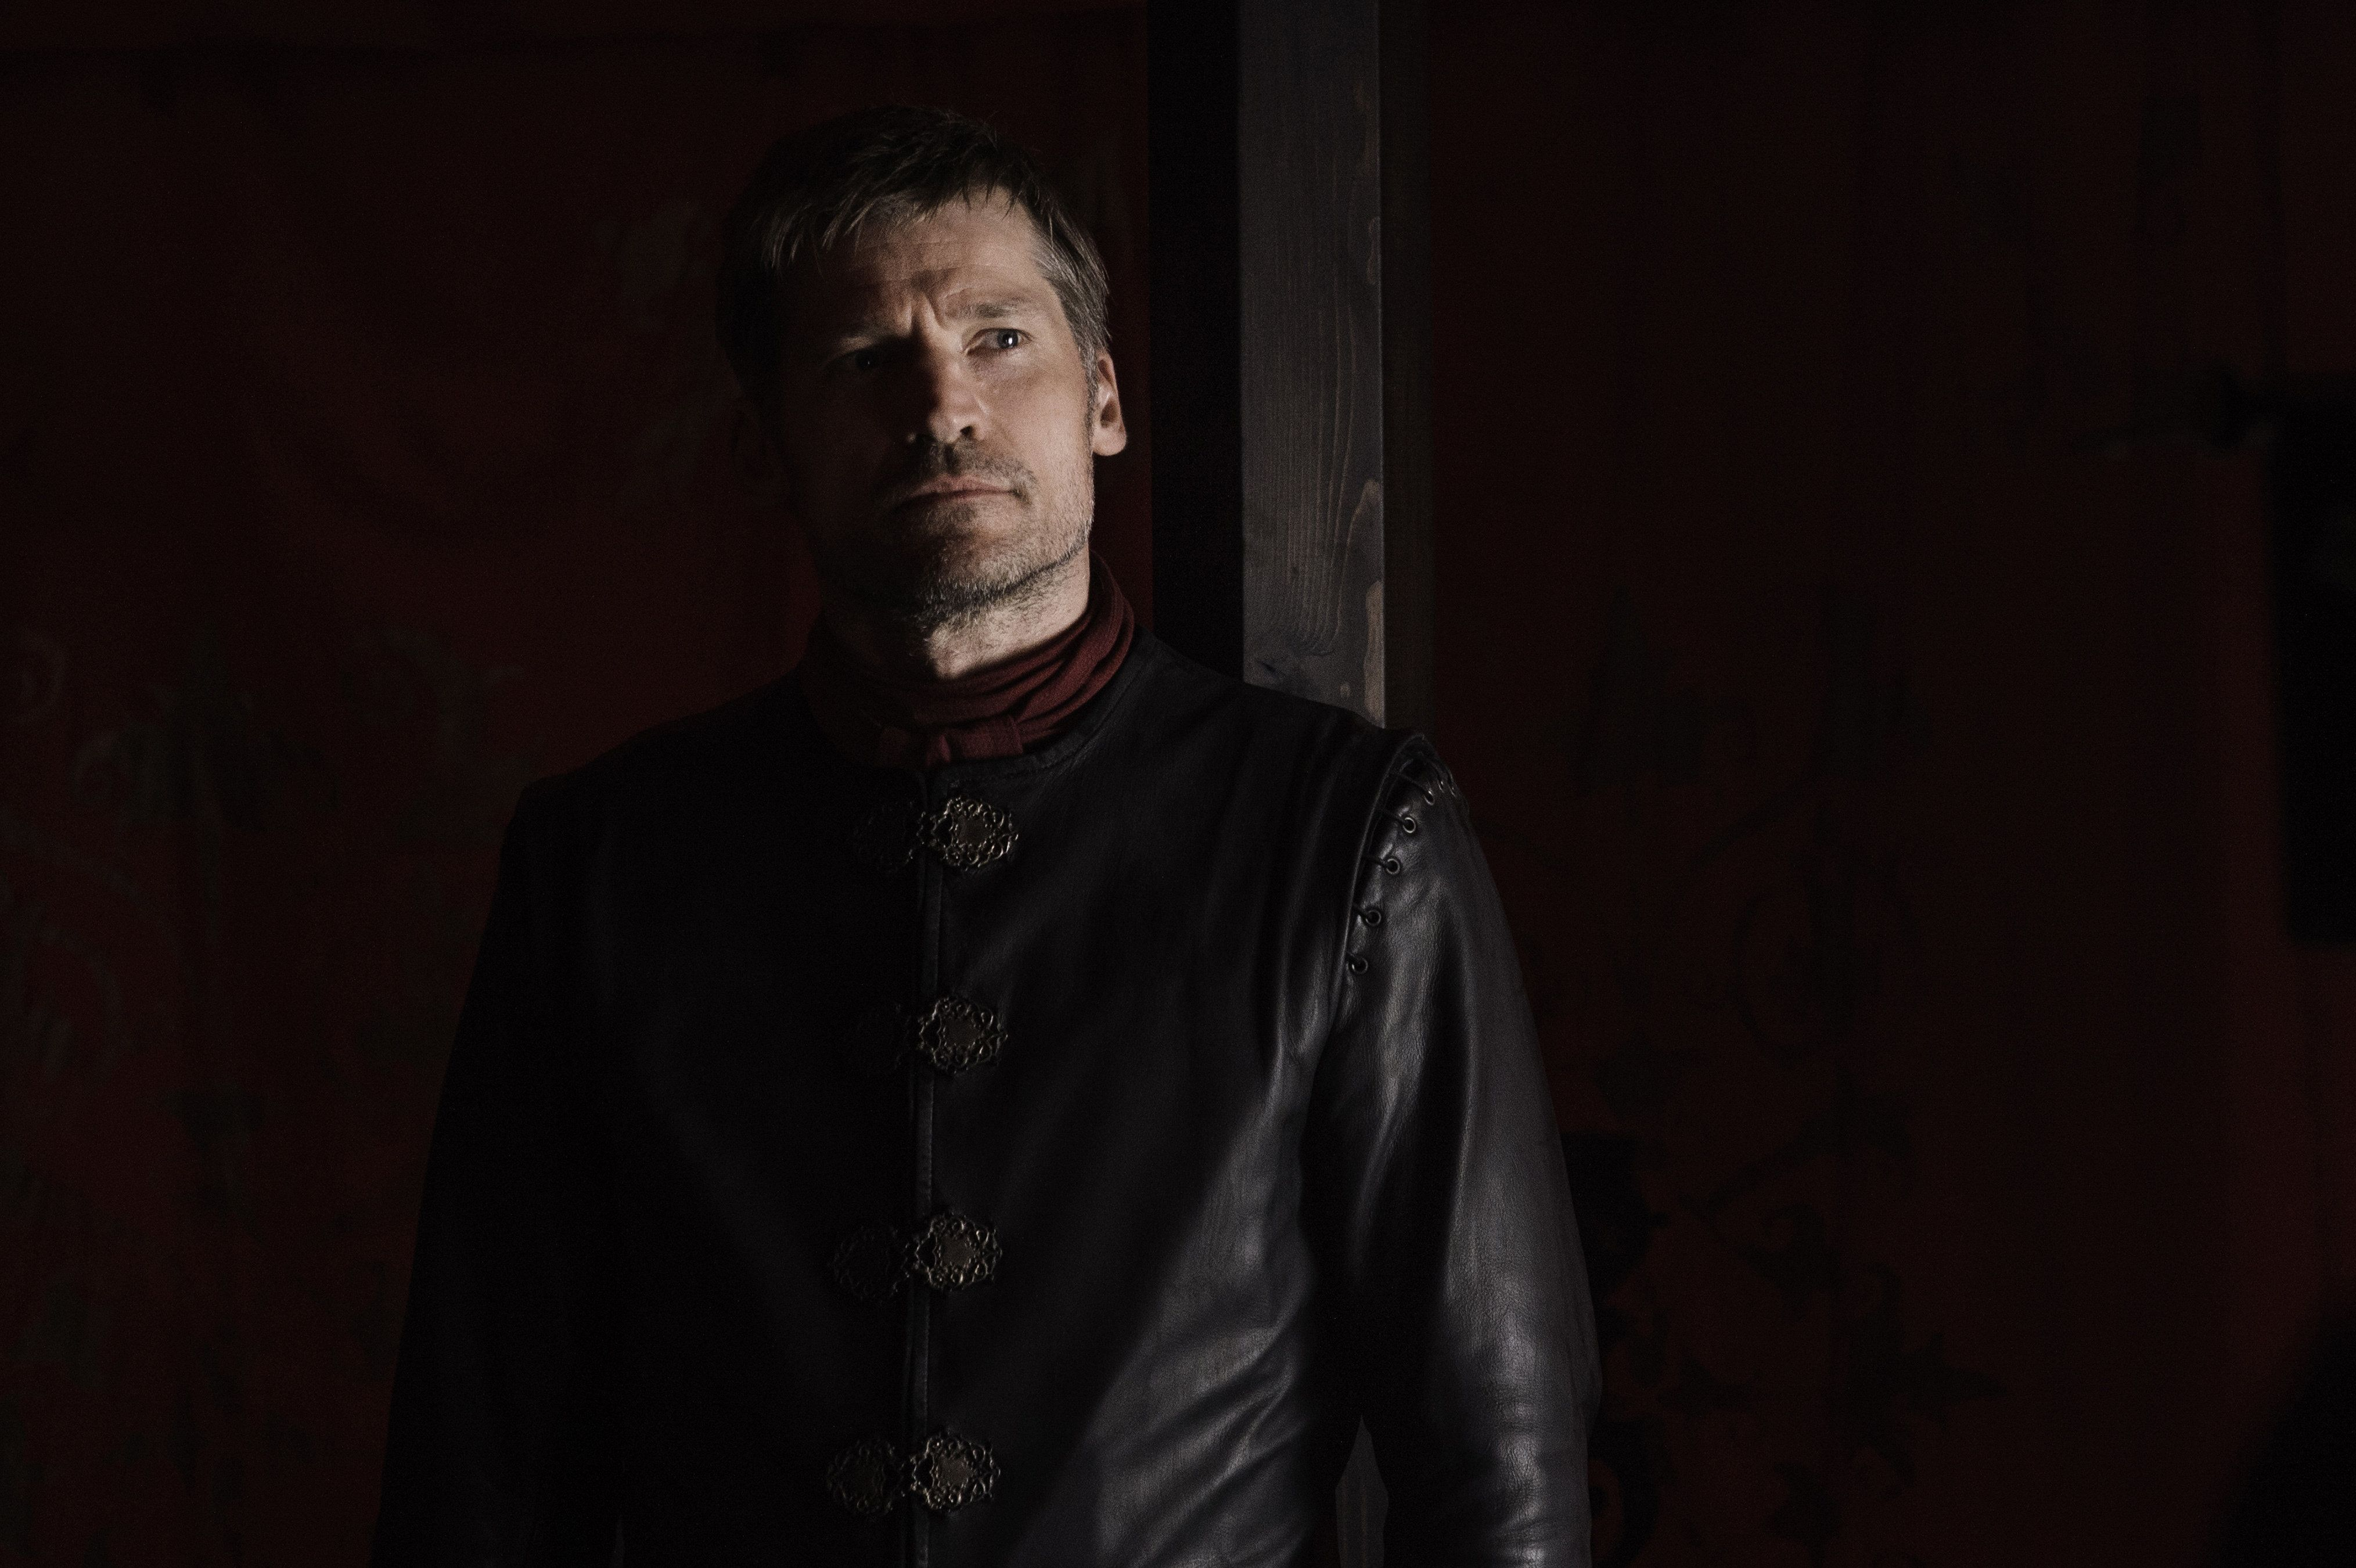 The Lannisters always pay their debts, and they owe King's Landing most of